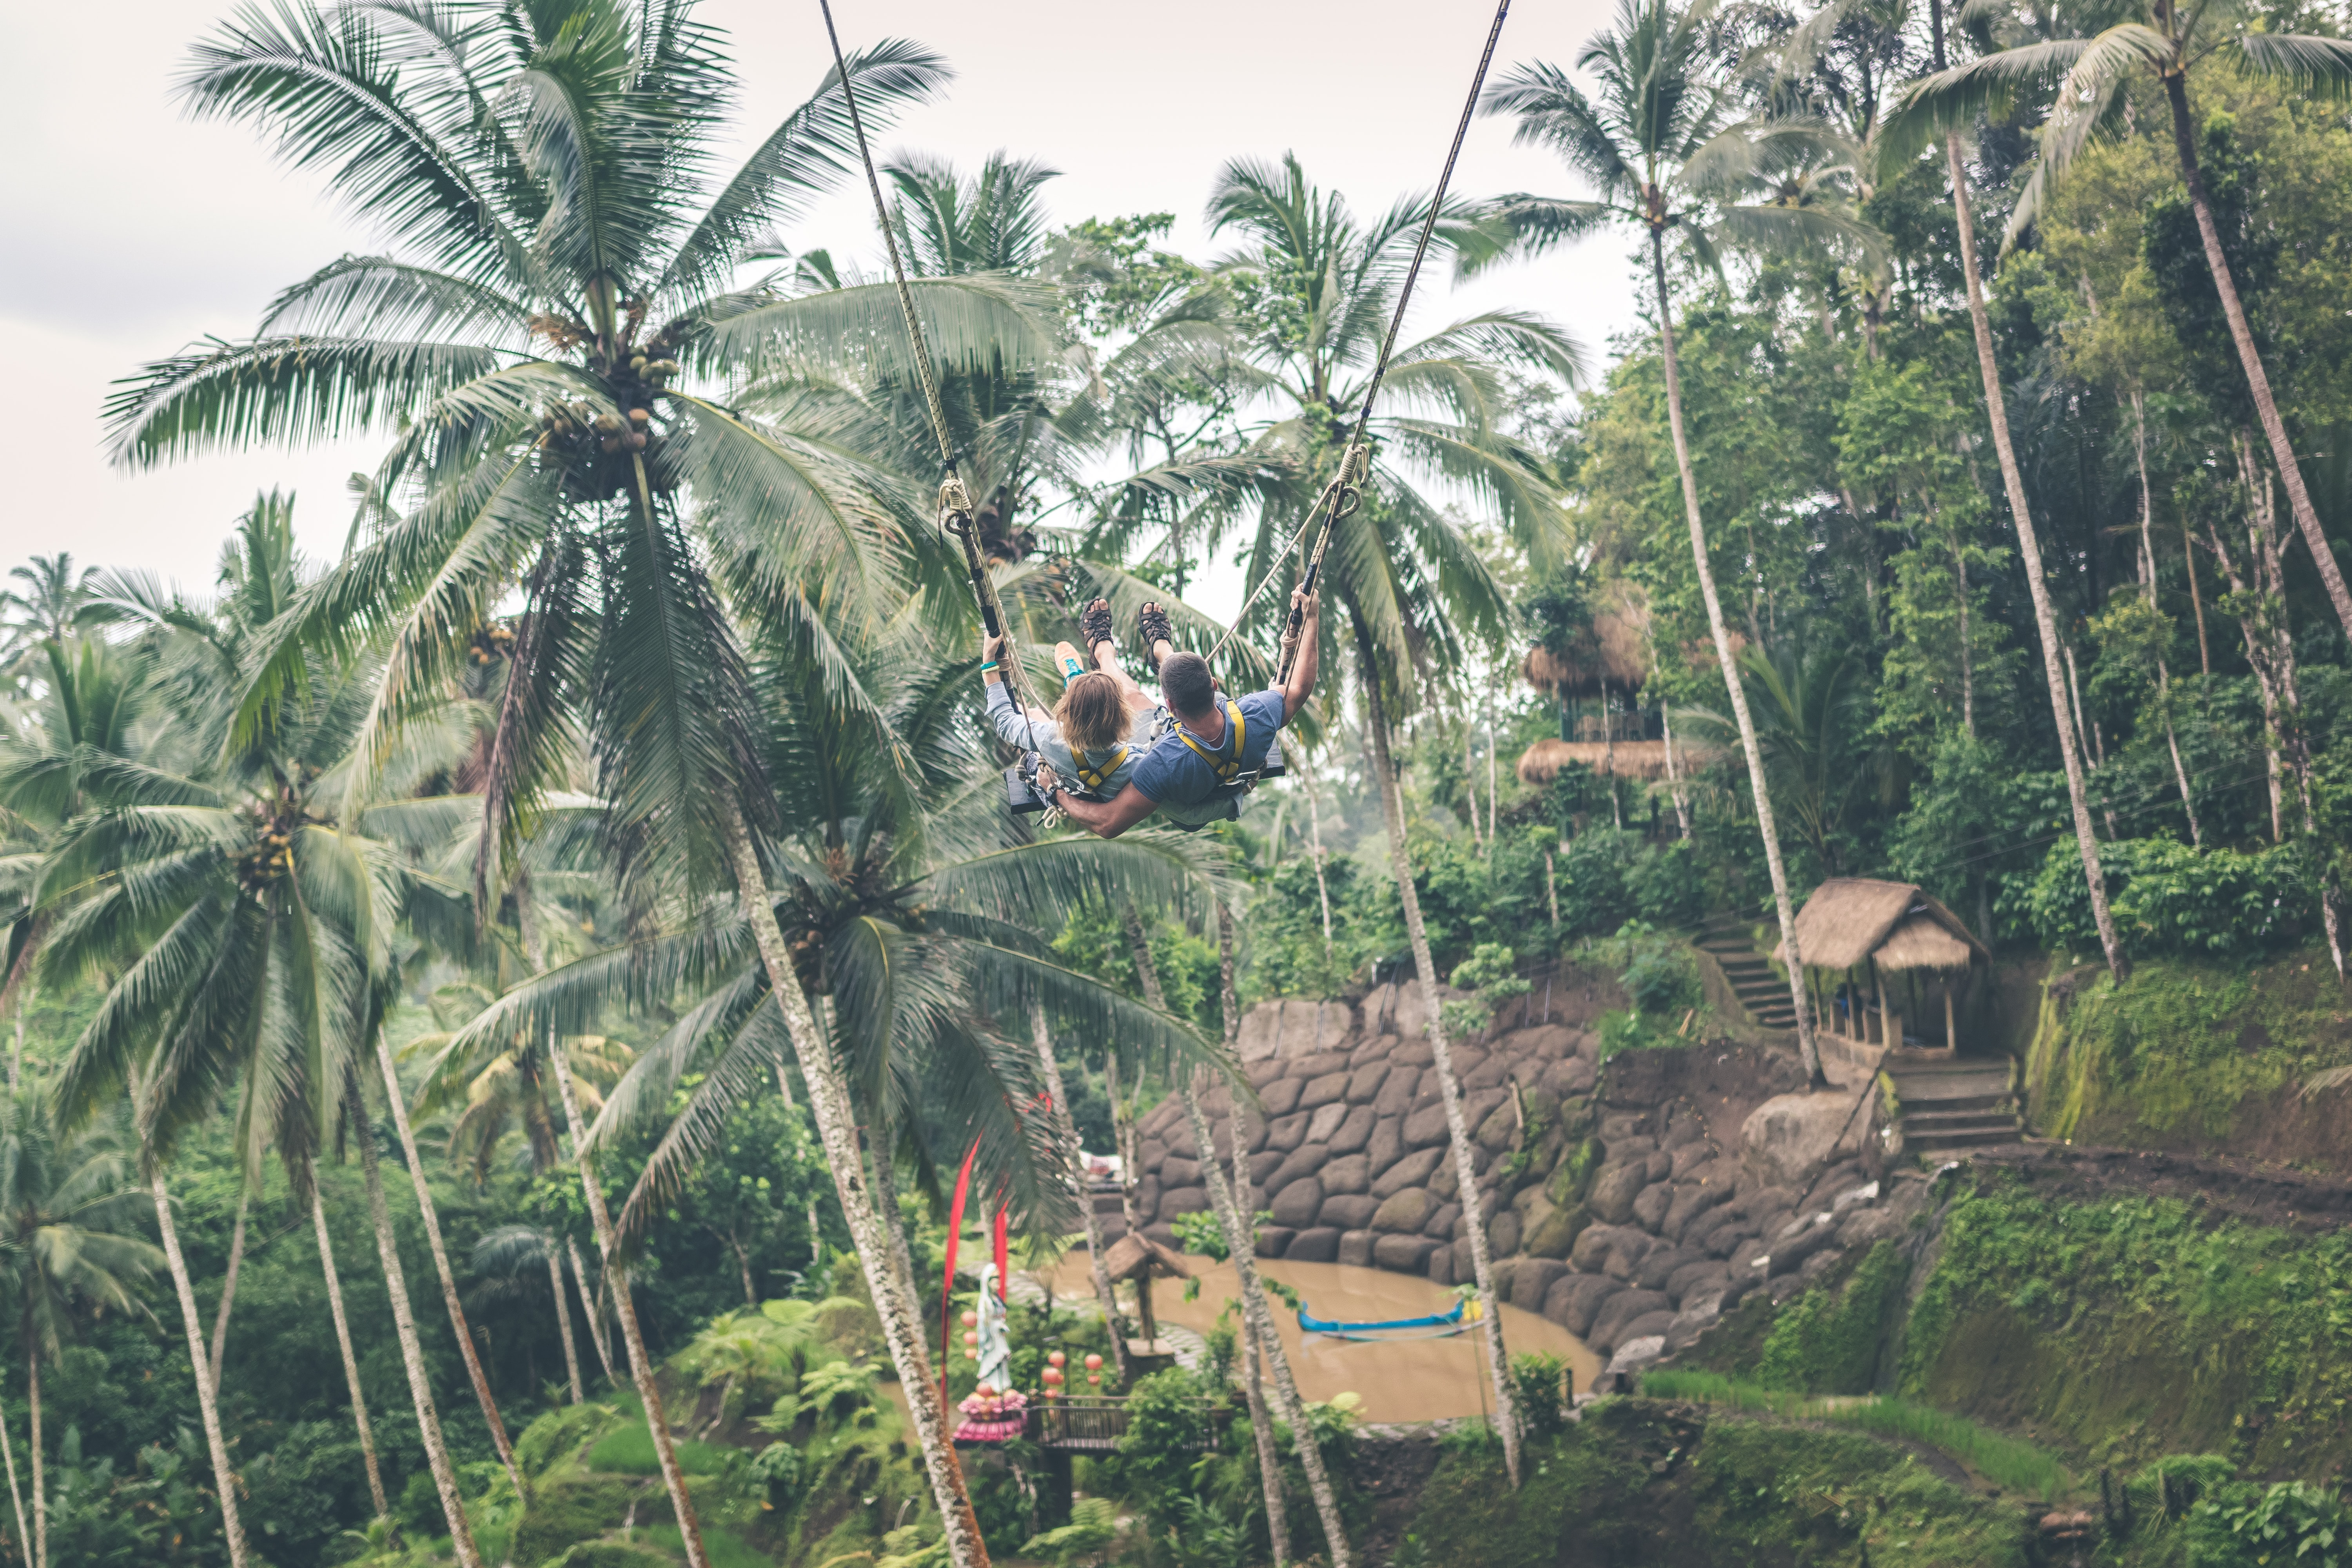 two person zip-lining